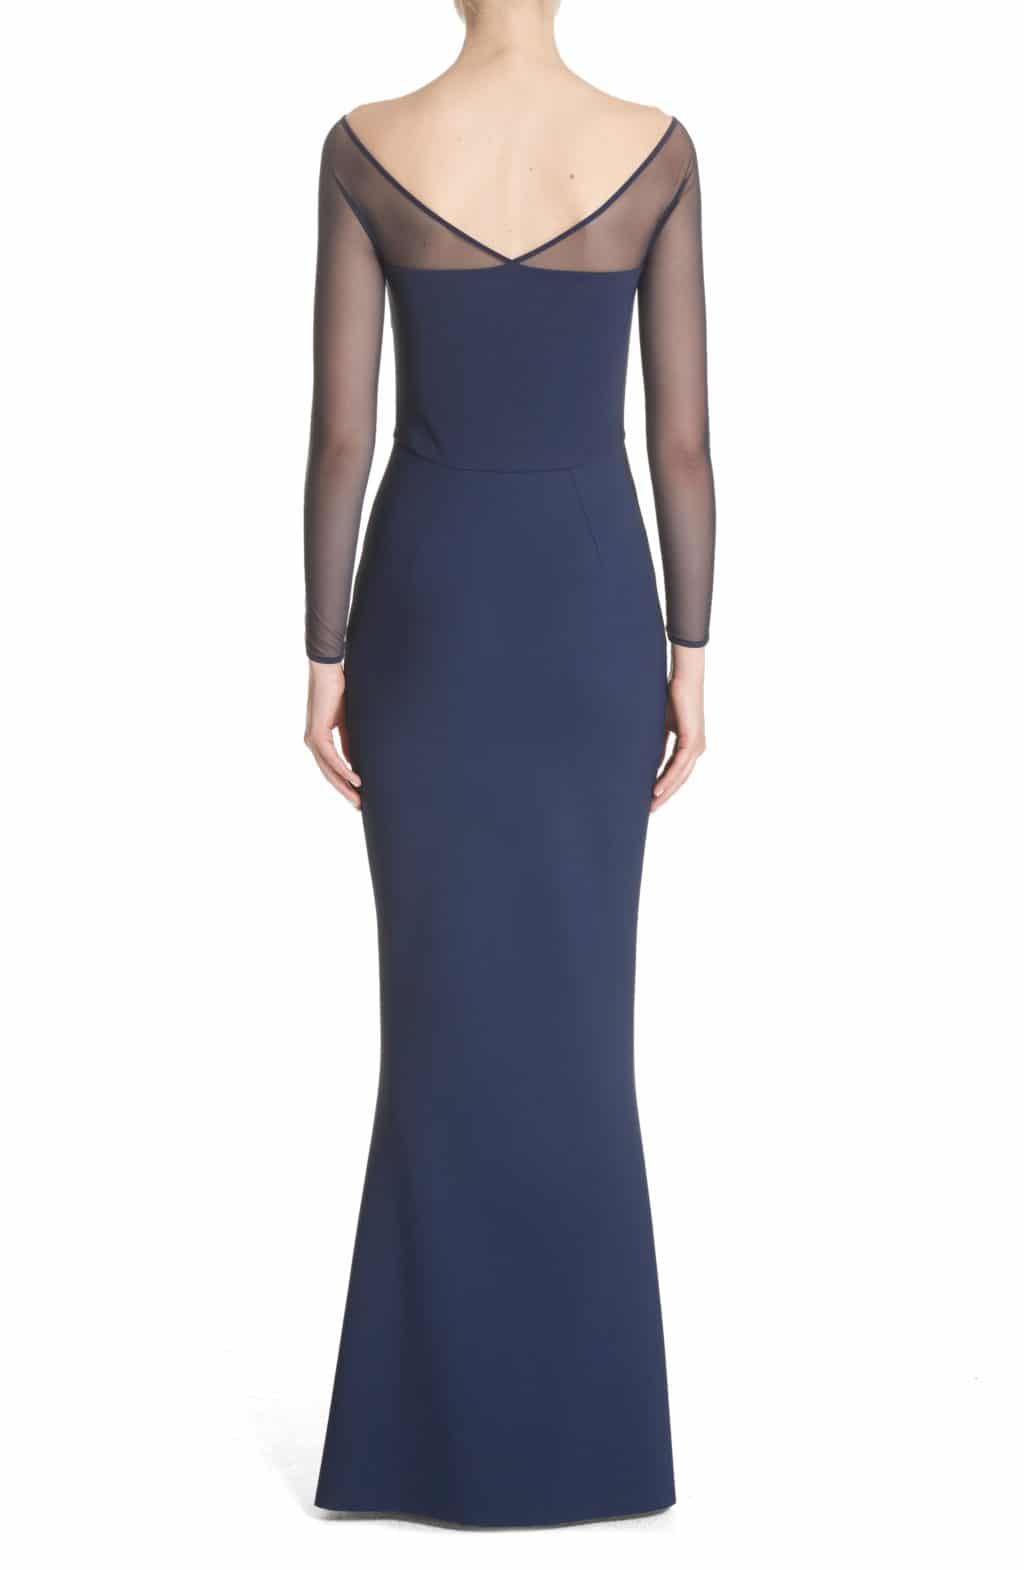 Chiara Boni La Petite Robe Saori Mesh Panel Mermaid Blue